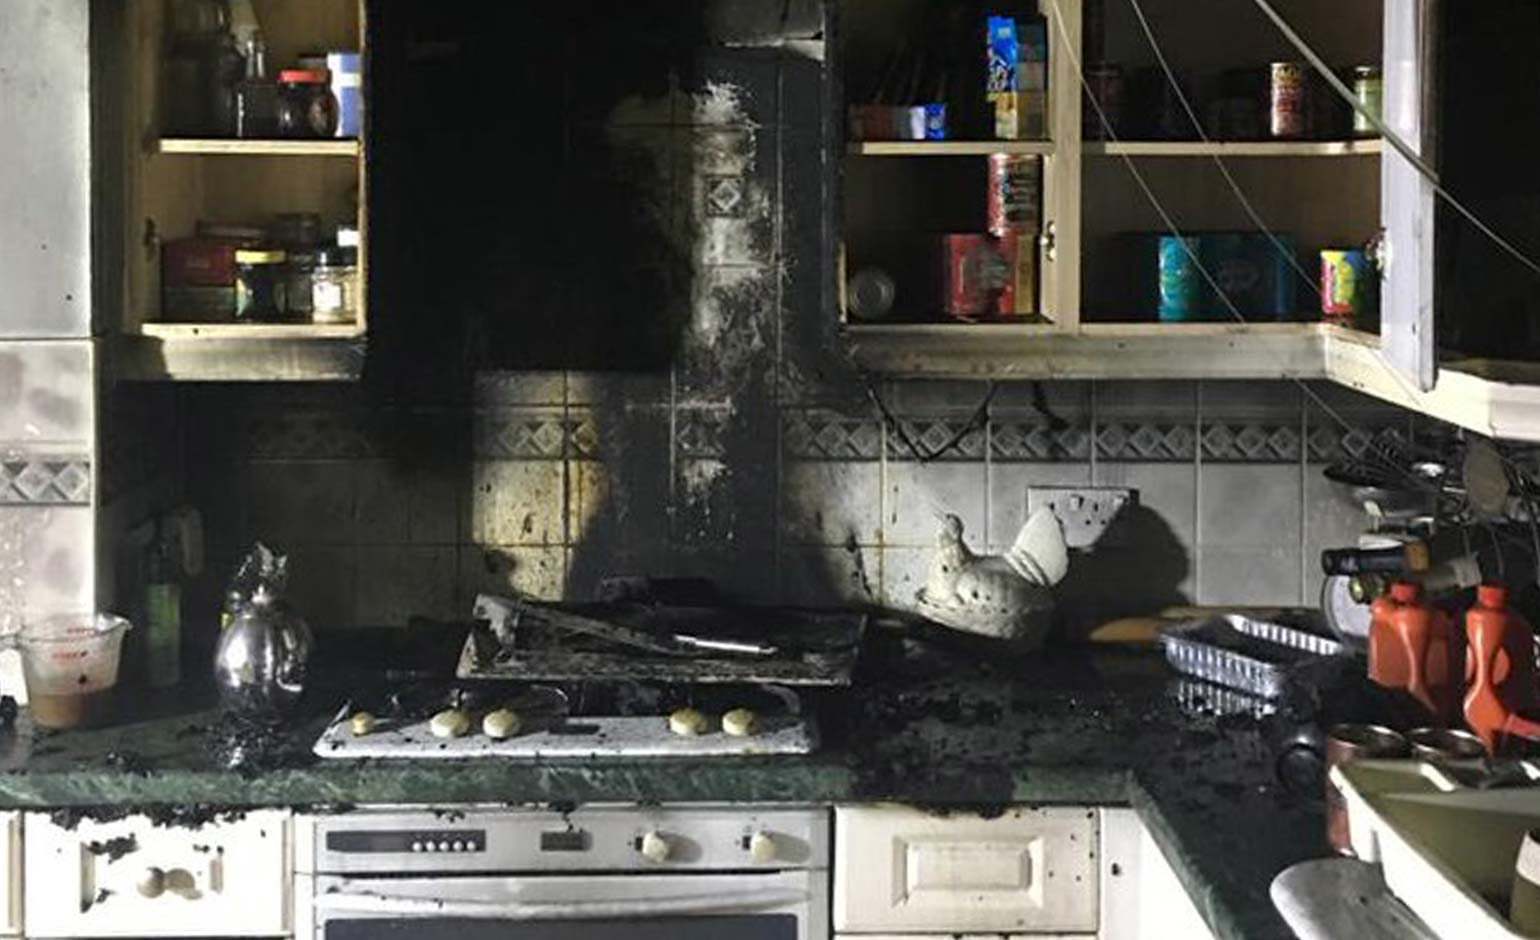 Two people taken to hospital following kitchen fire at property in Odd Down